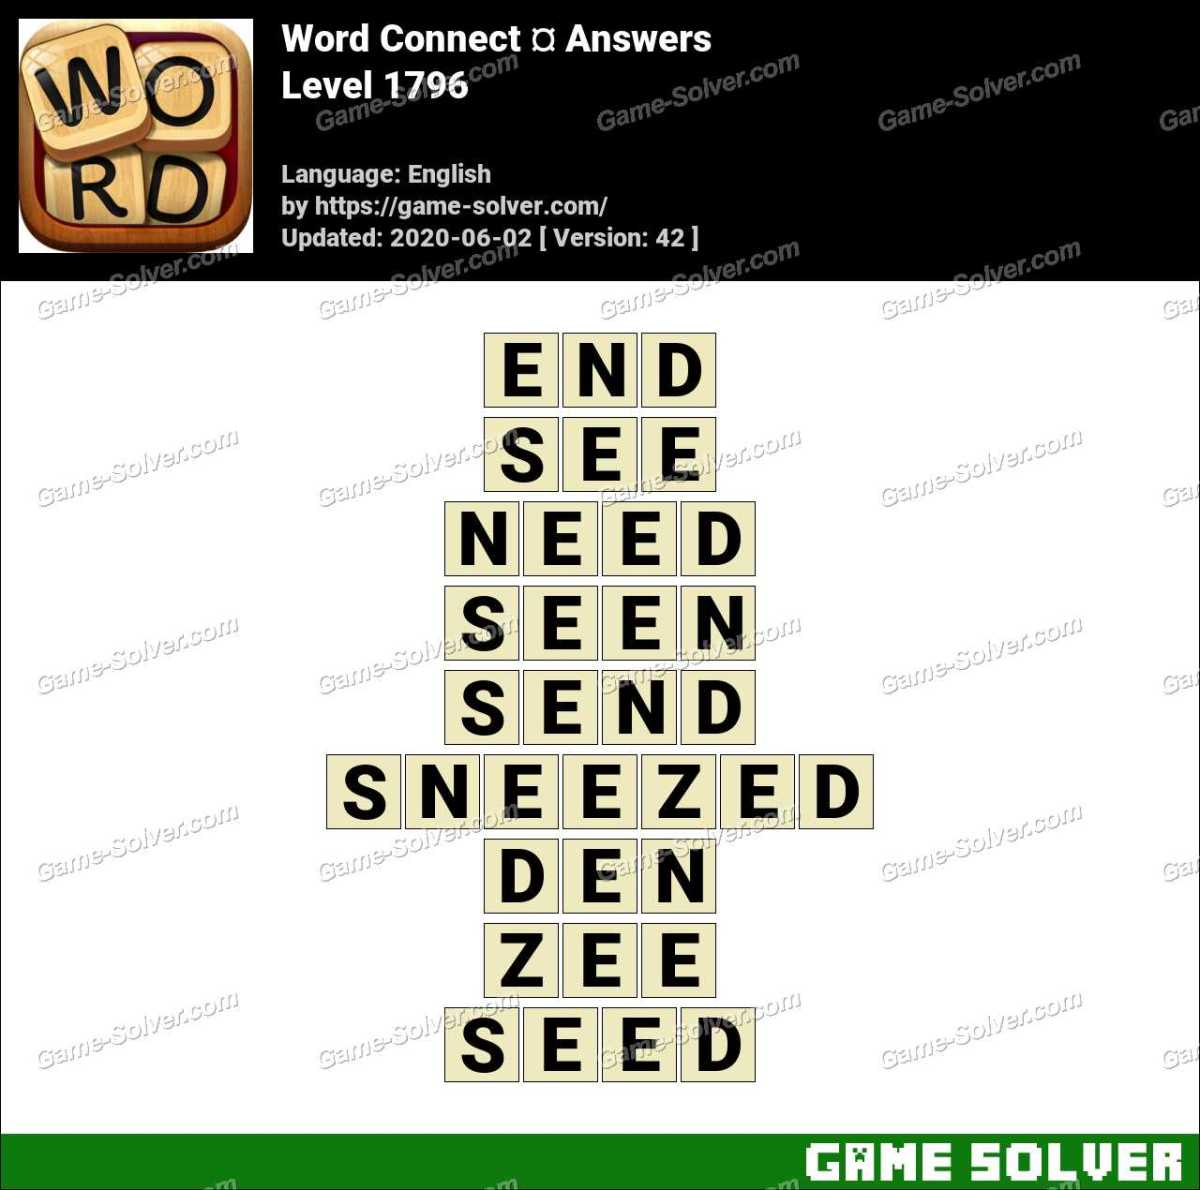 Word Connect Level 1796 Answers